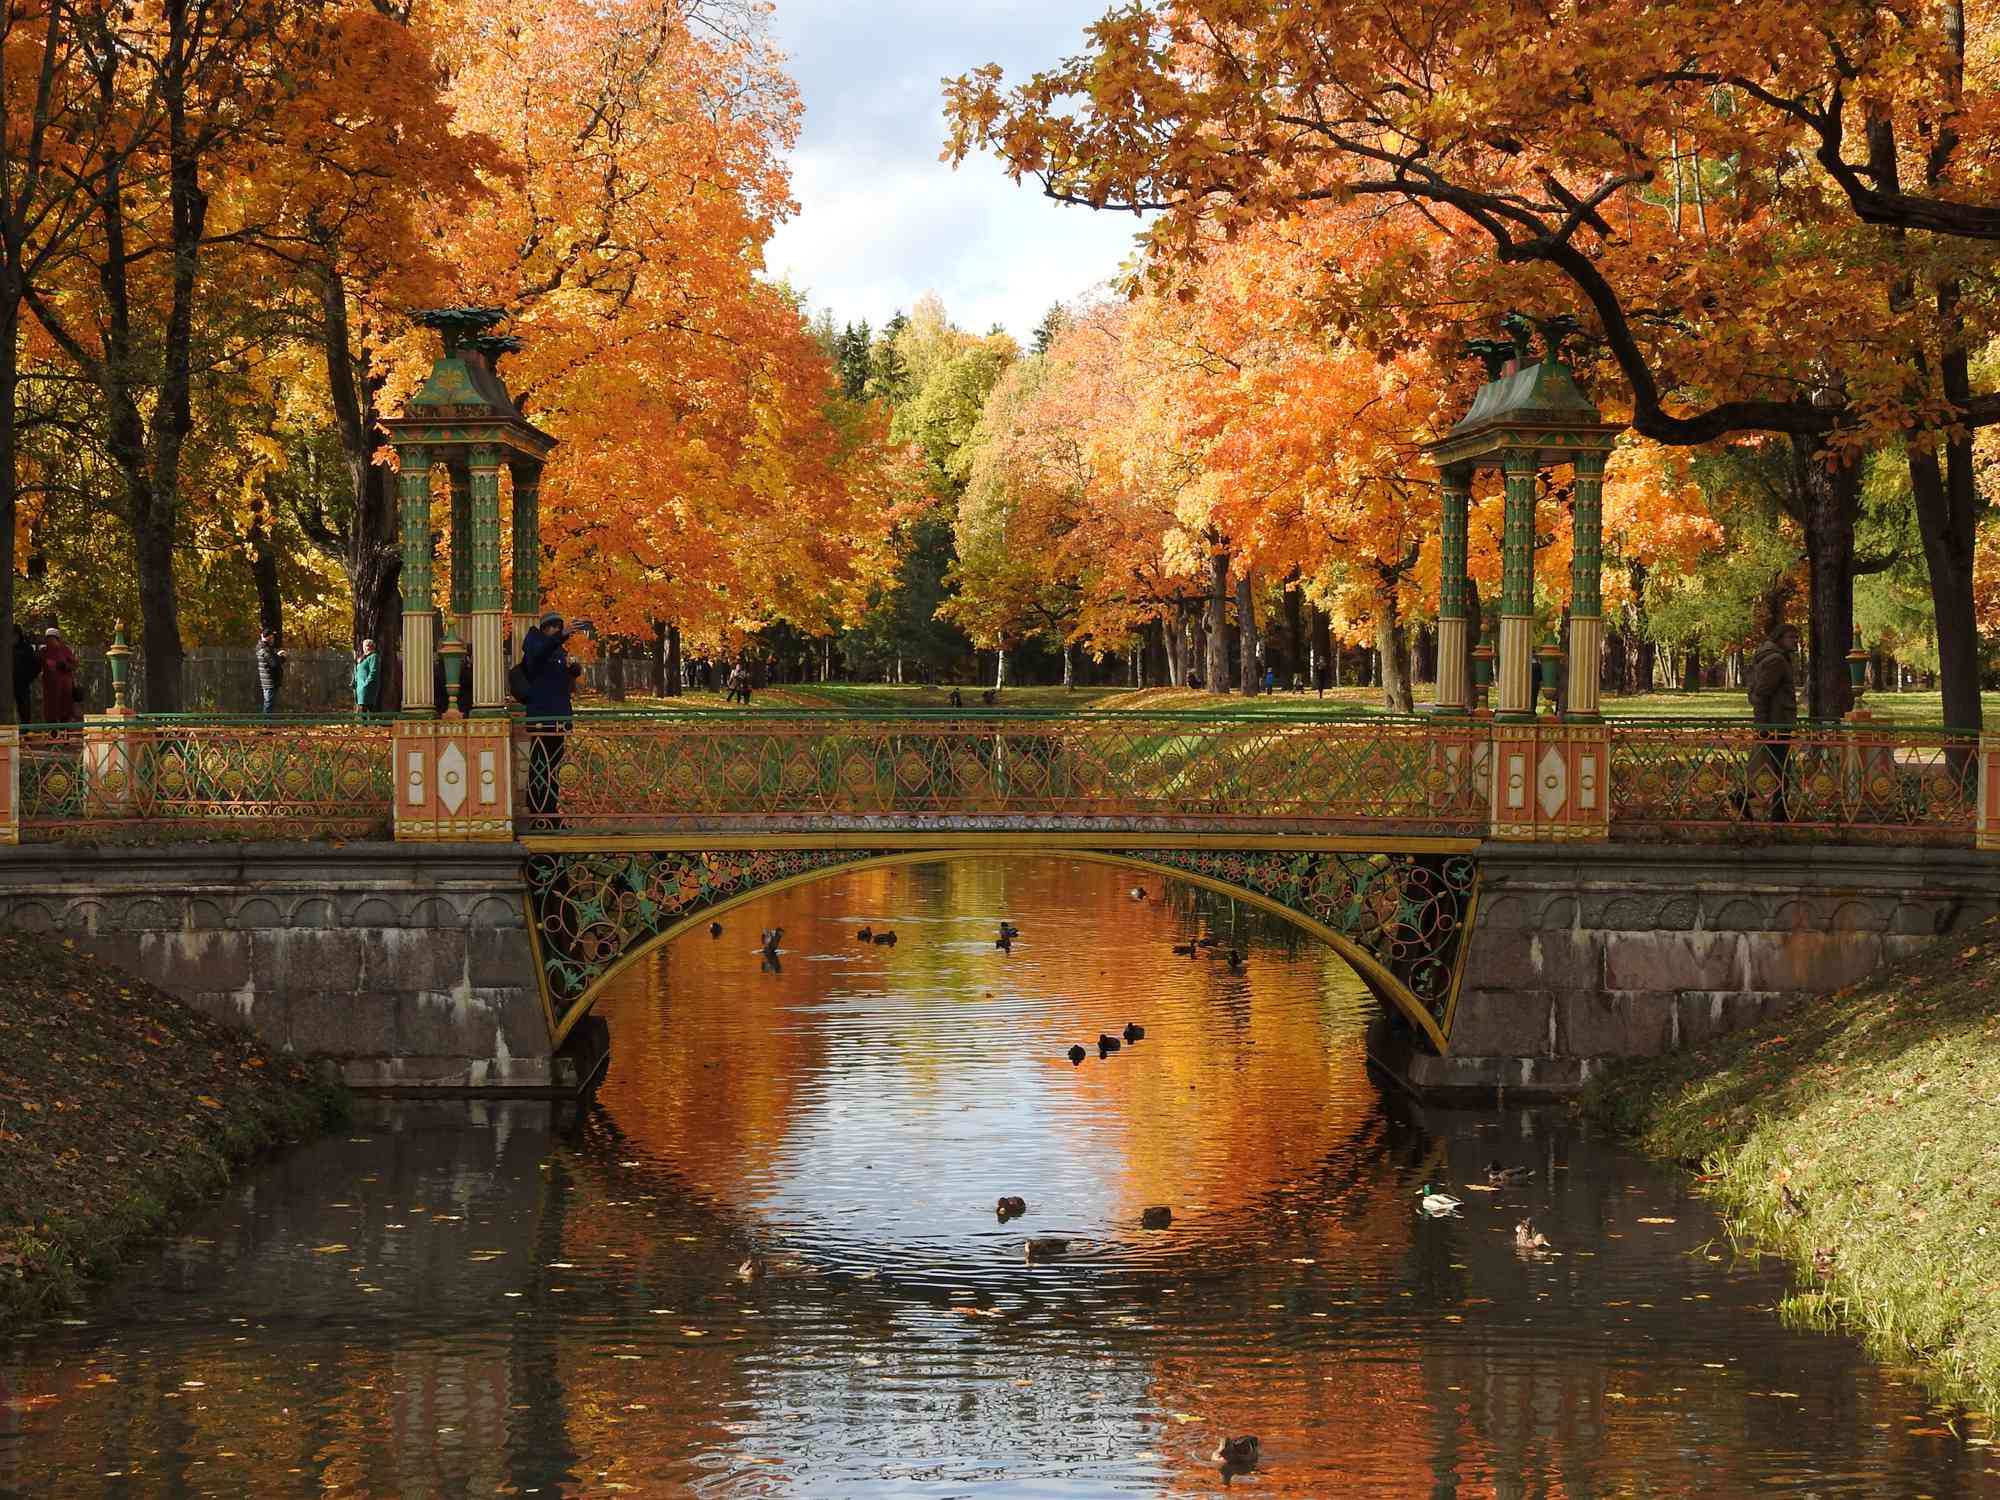 Arch Bridge Over a lake with architectural statues on both sides of the bridge and rows of tall trees in shades of red and orange on both sides of the waterway in St. Petersburg, Russia